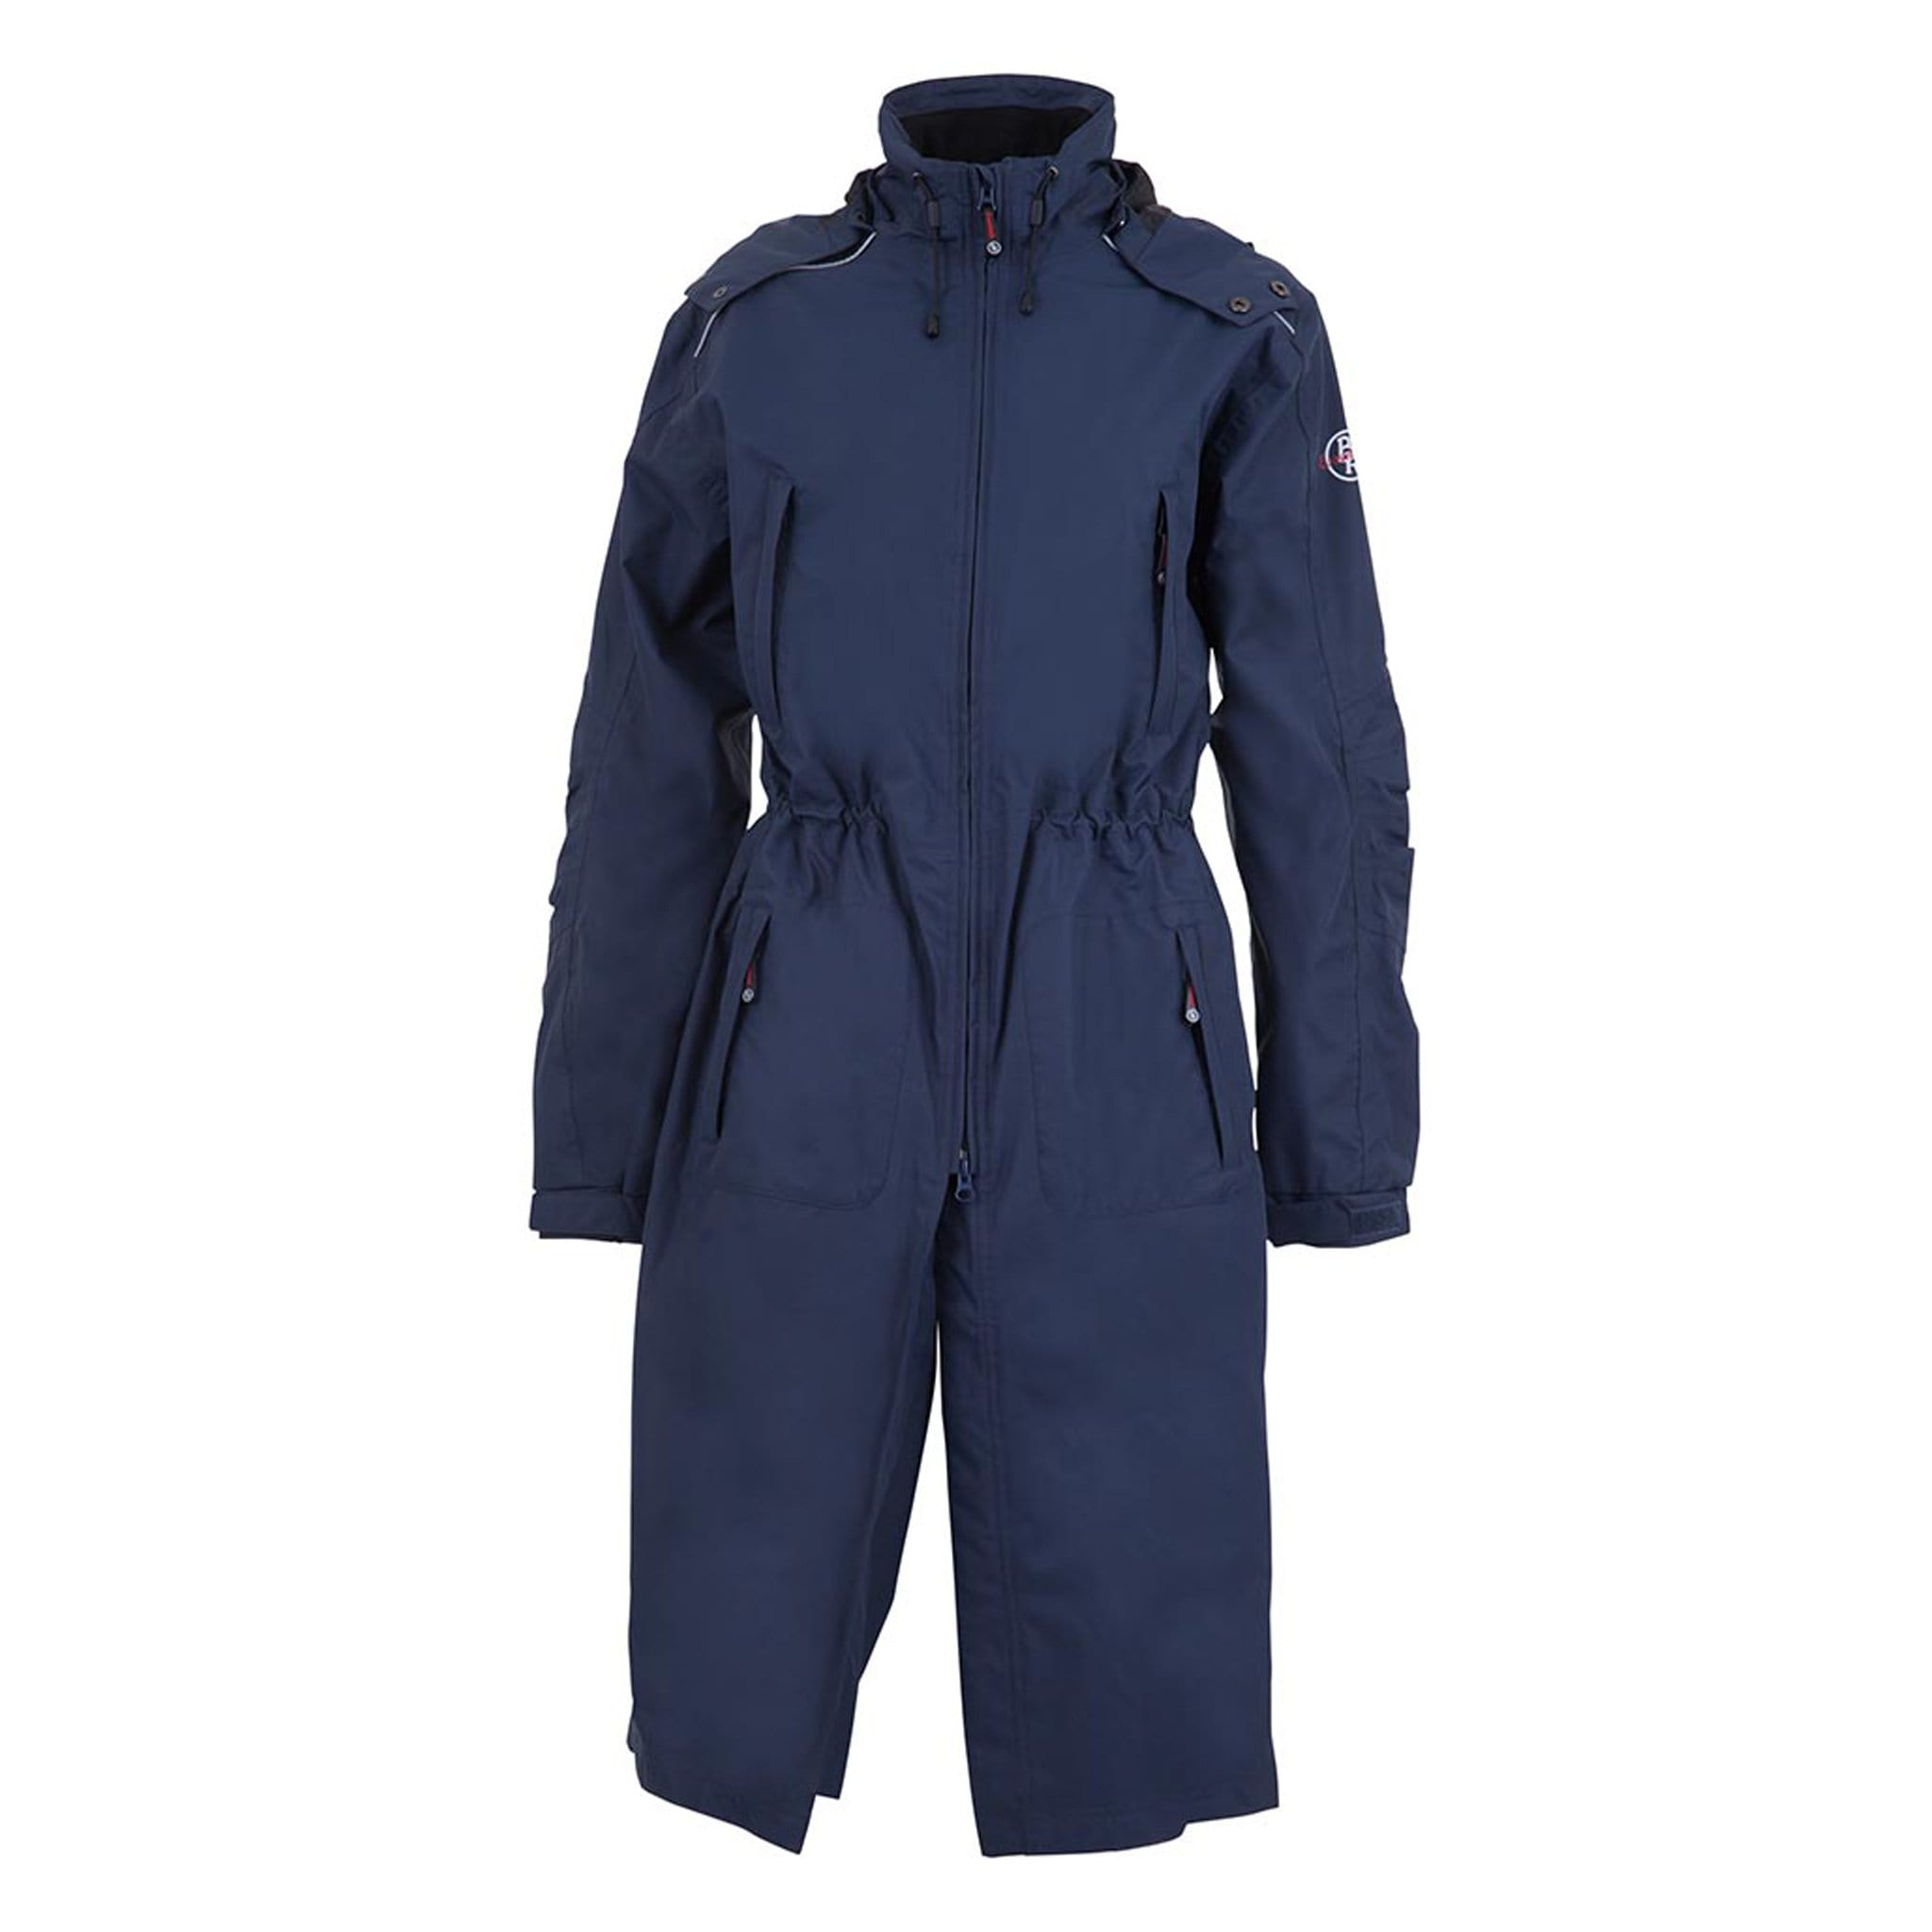 BR Equestrian Essential Long Waterproof Riding Coat 653006 Navy Front